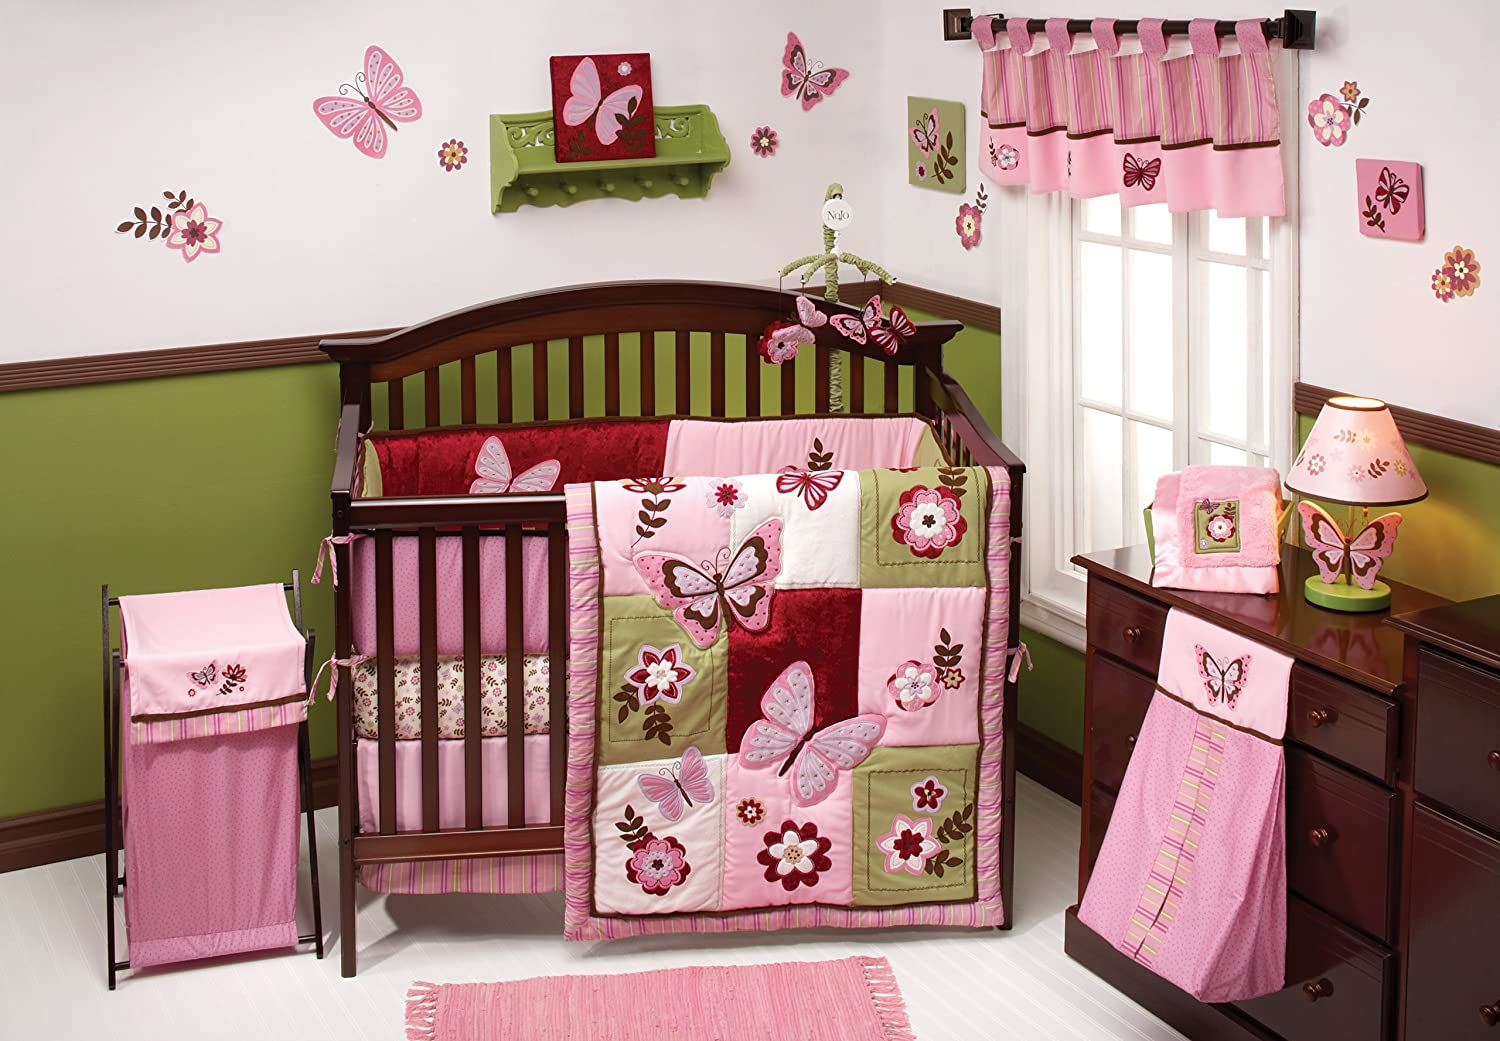 Design Baby Bed Set amazon com nojo emily 8 piece bedding set crib sets baby